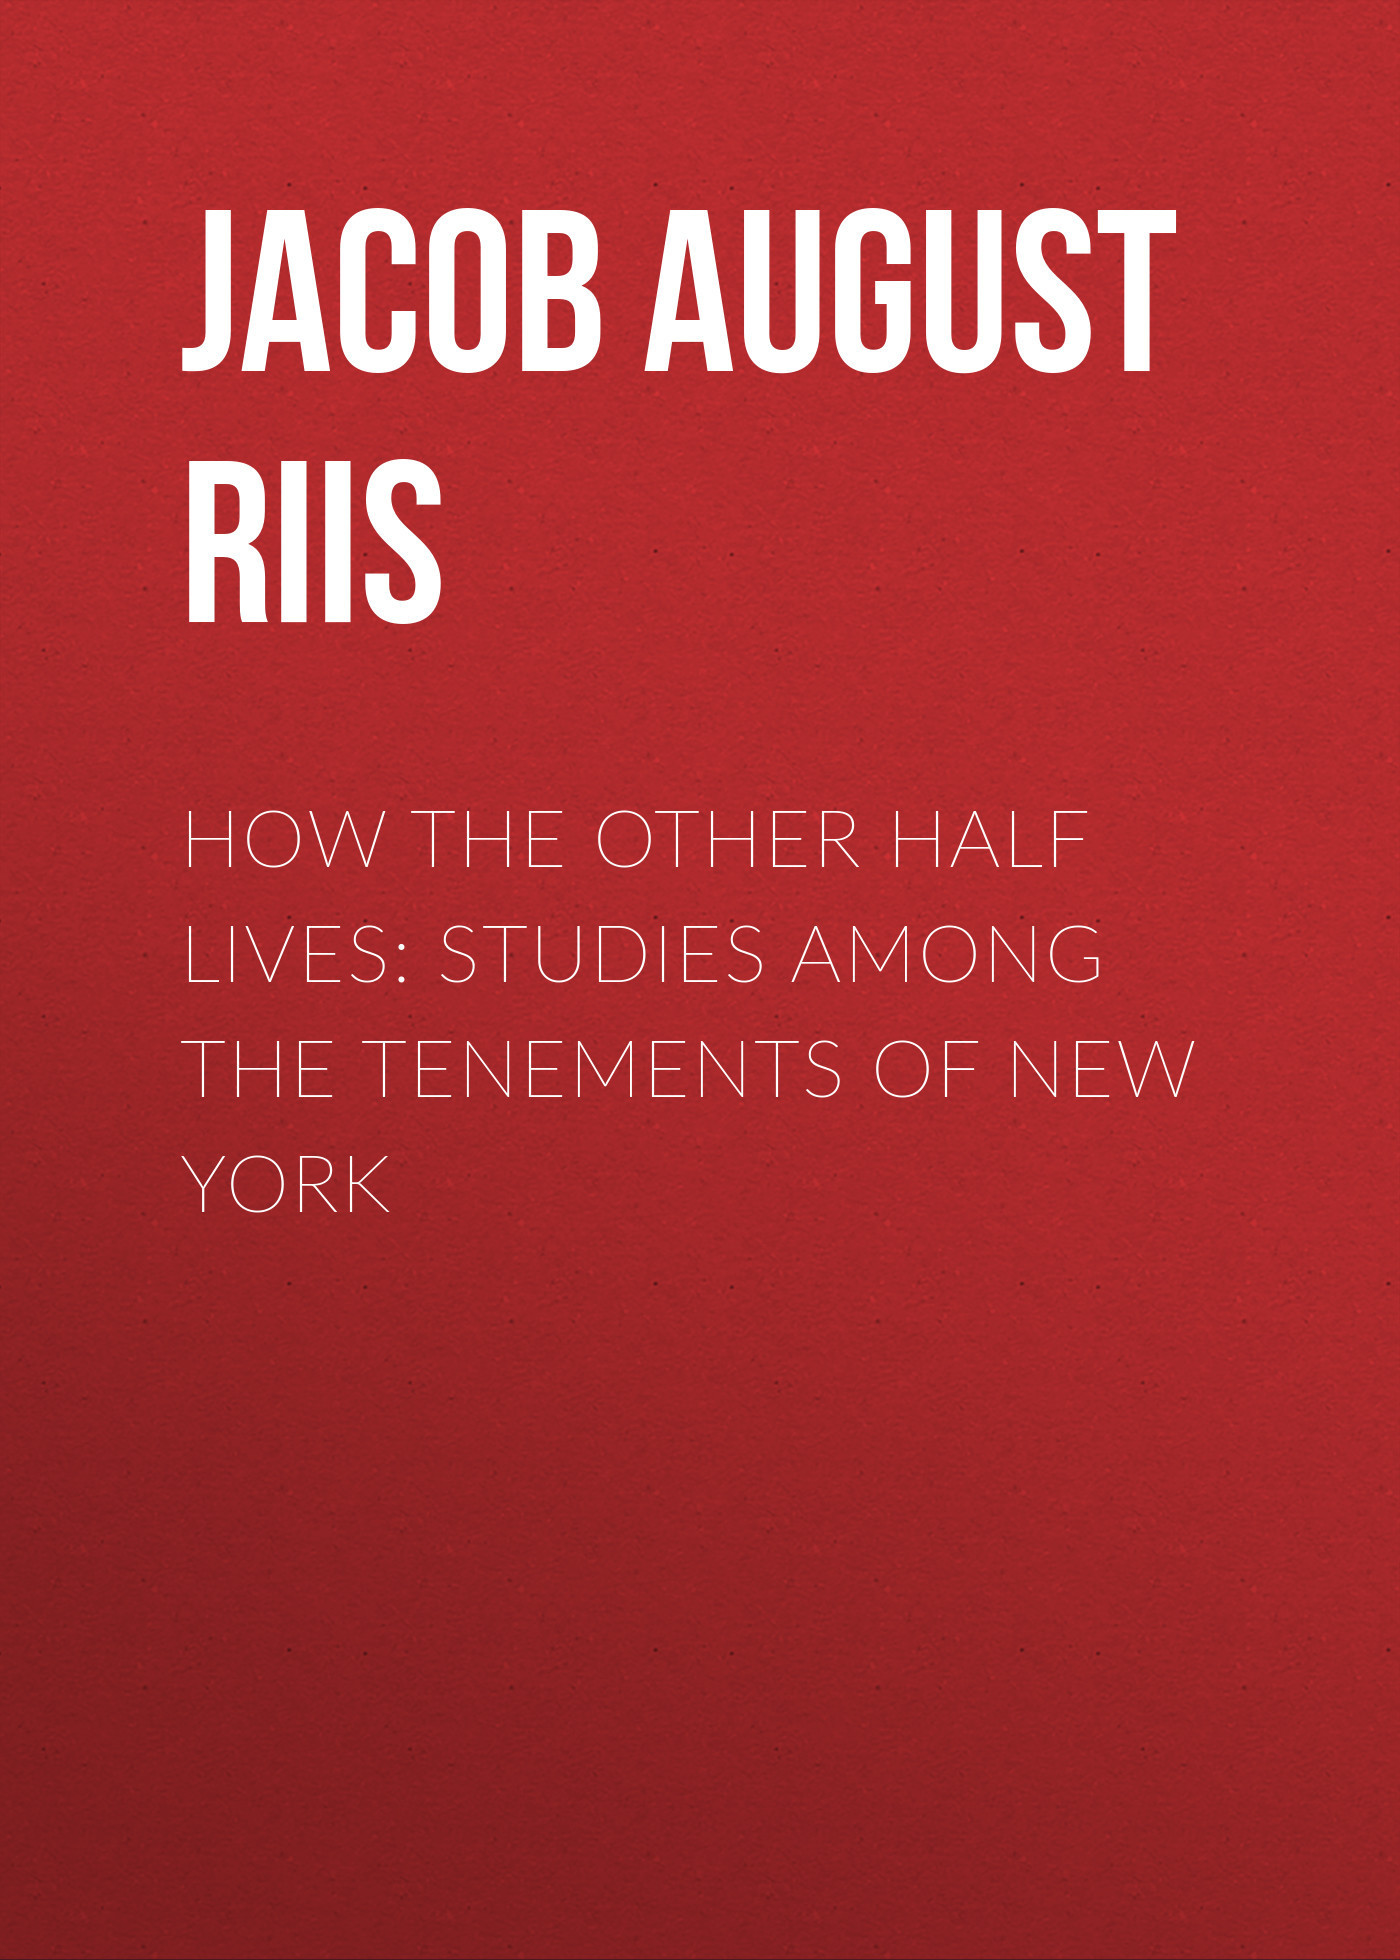 Jacob August Riis How the Other Half Lives: Studies Among the Tenements of New York салазки направляющие с патрубком bosch 2605510265